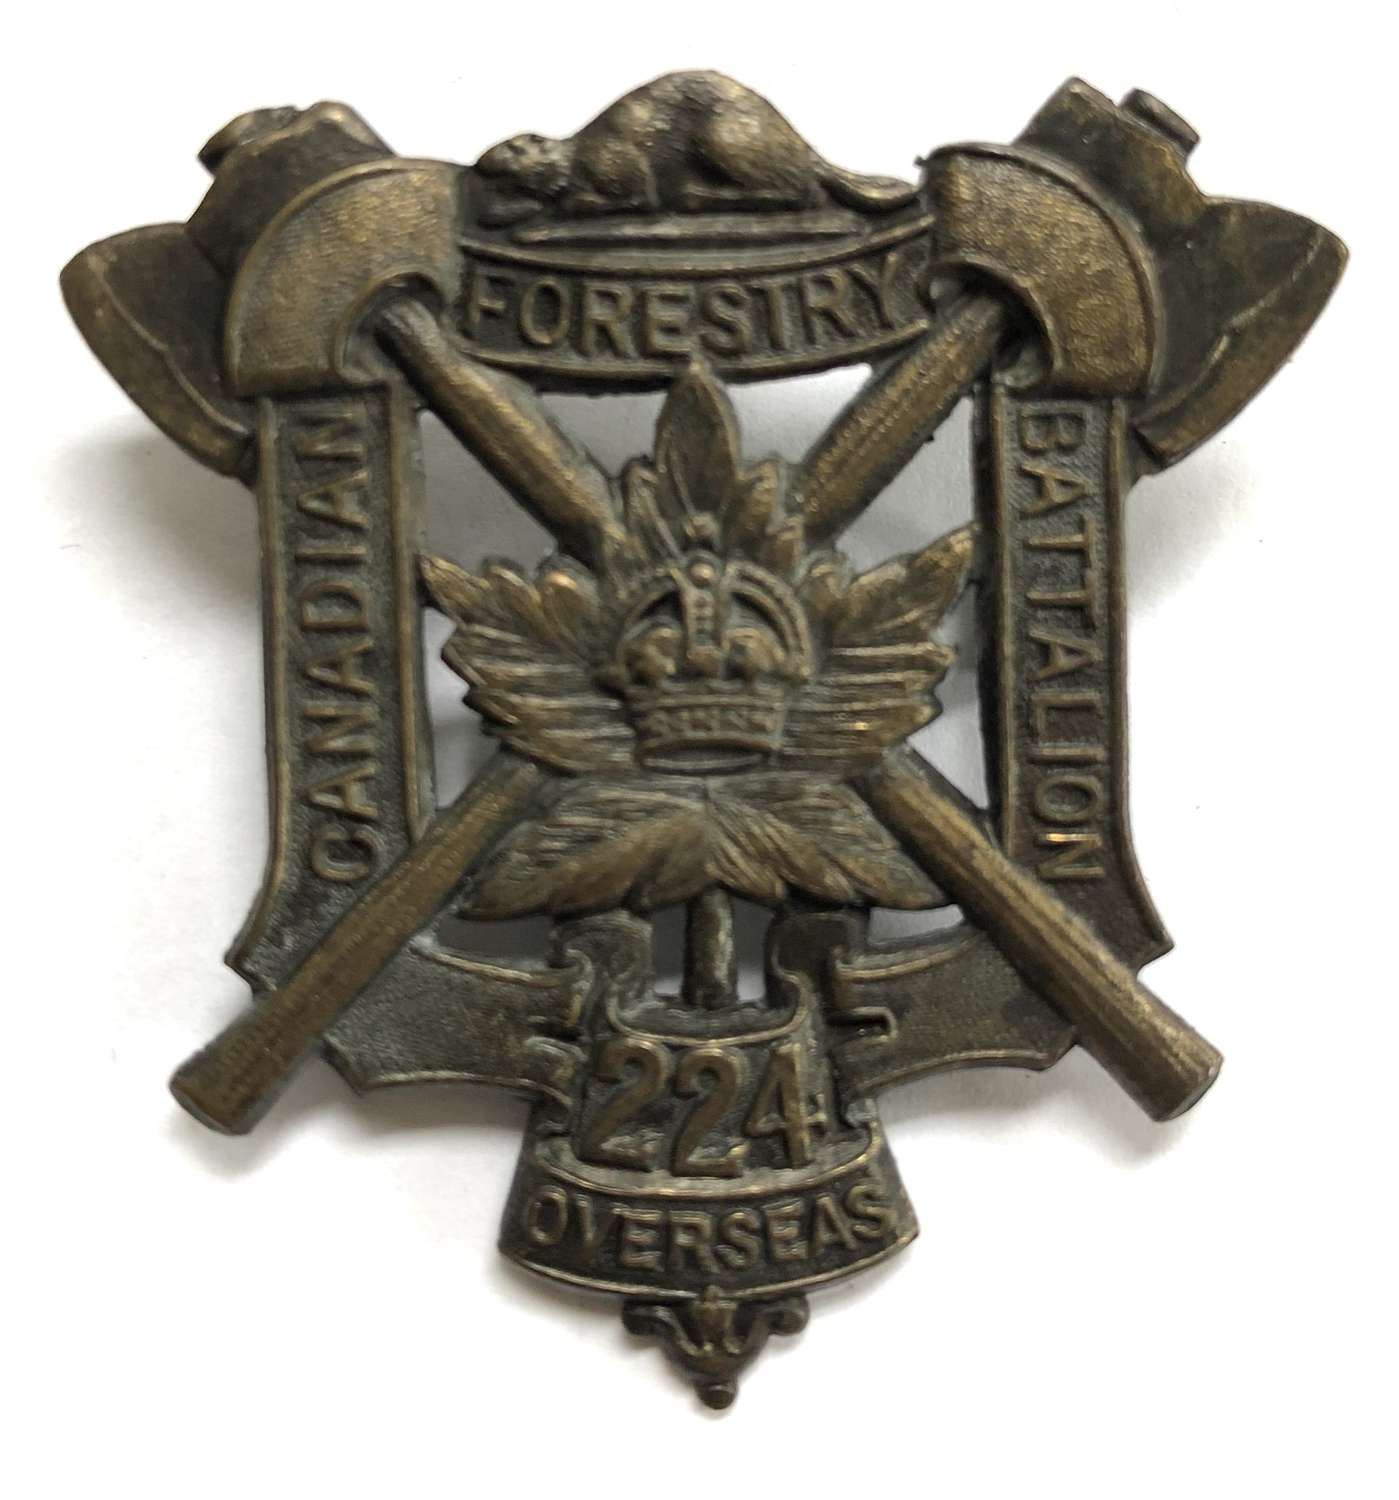 Canadian 224th (Forestry, Ottawa) Bn. CEF WW1 cap badge